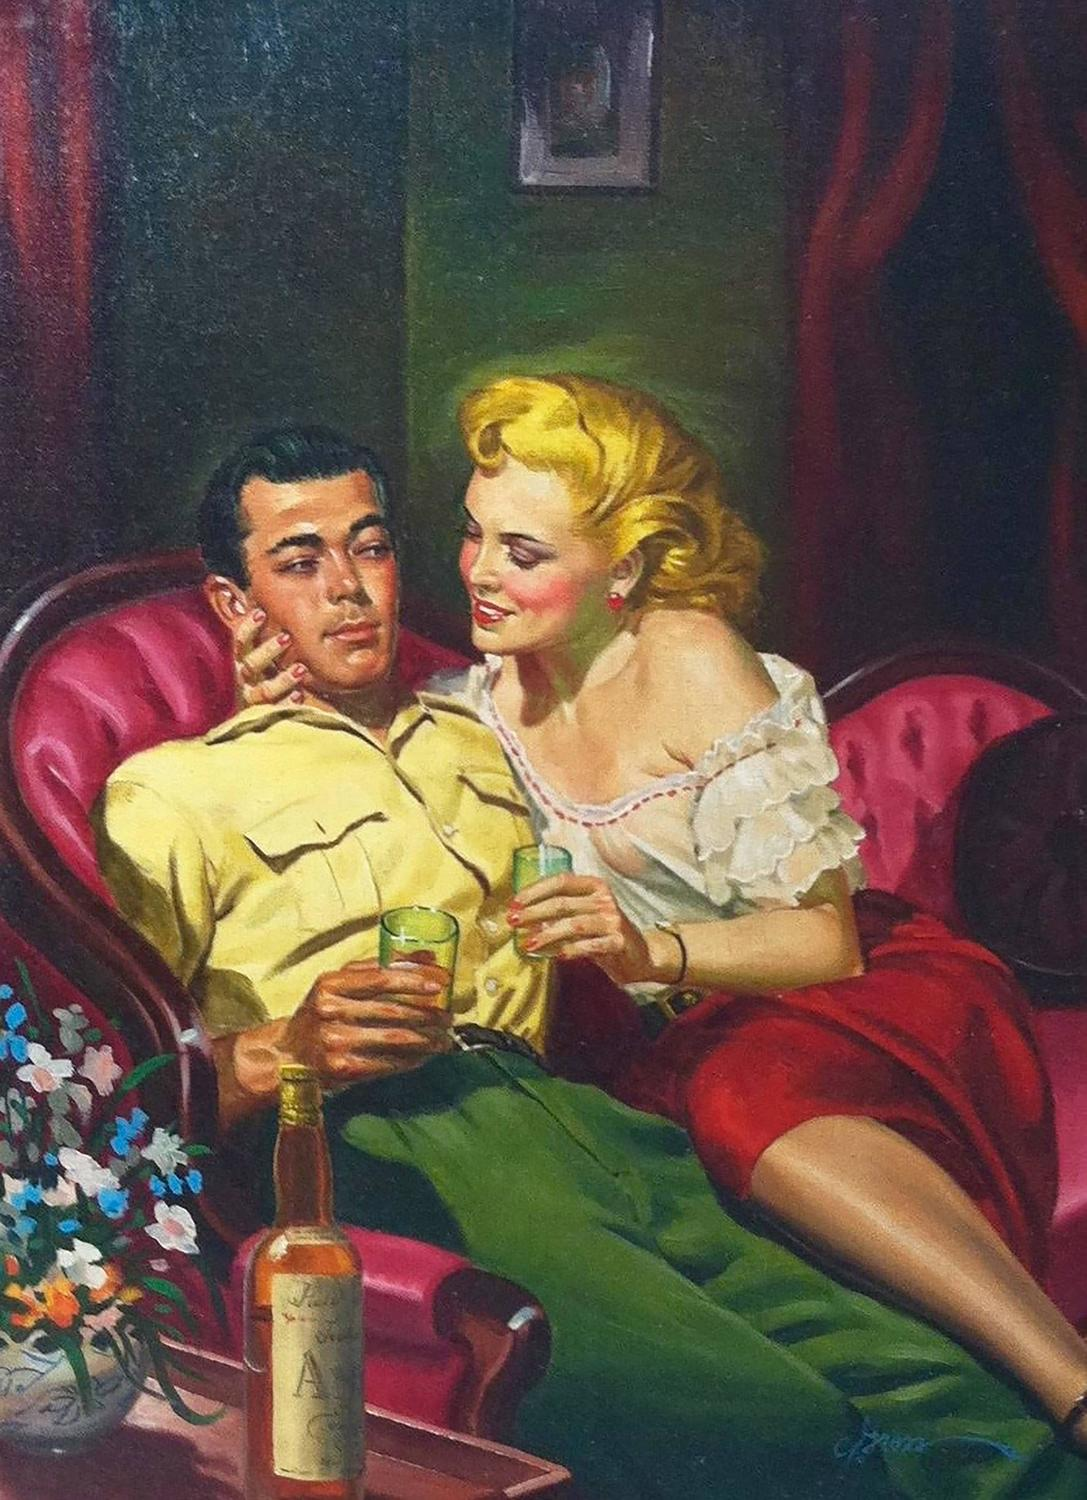 George Gross Lover Boy Paperback Cover For Sale At 1stdibs